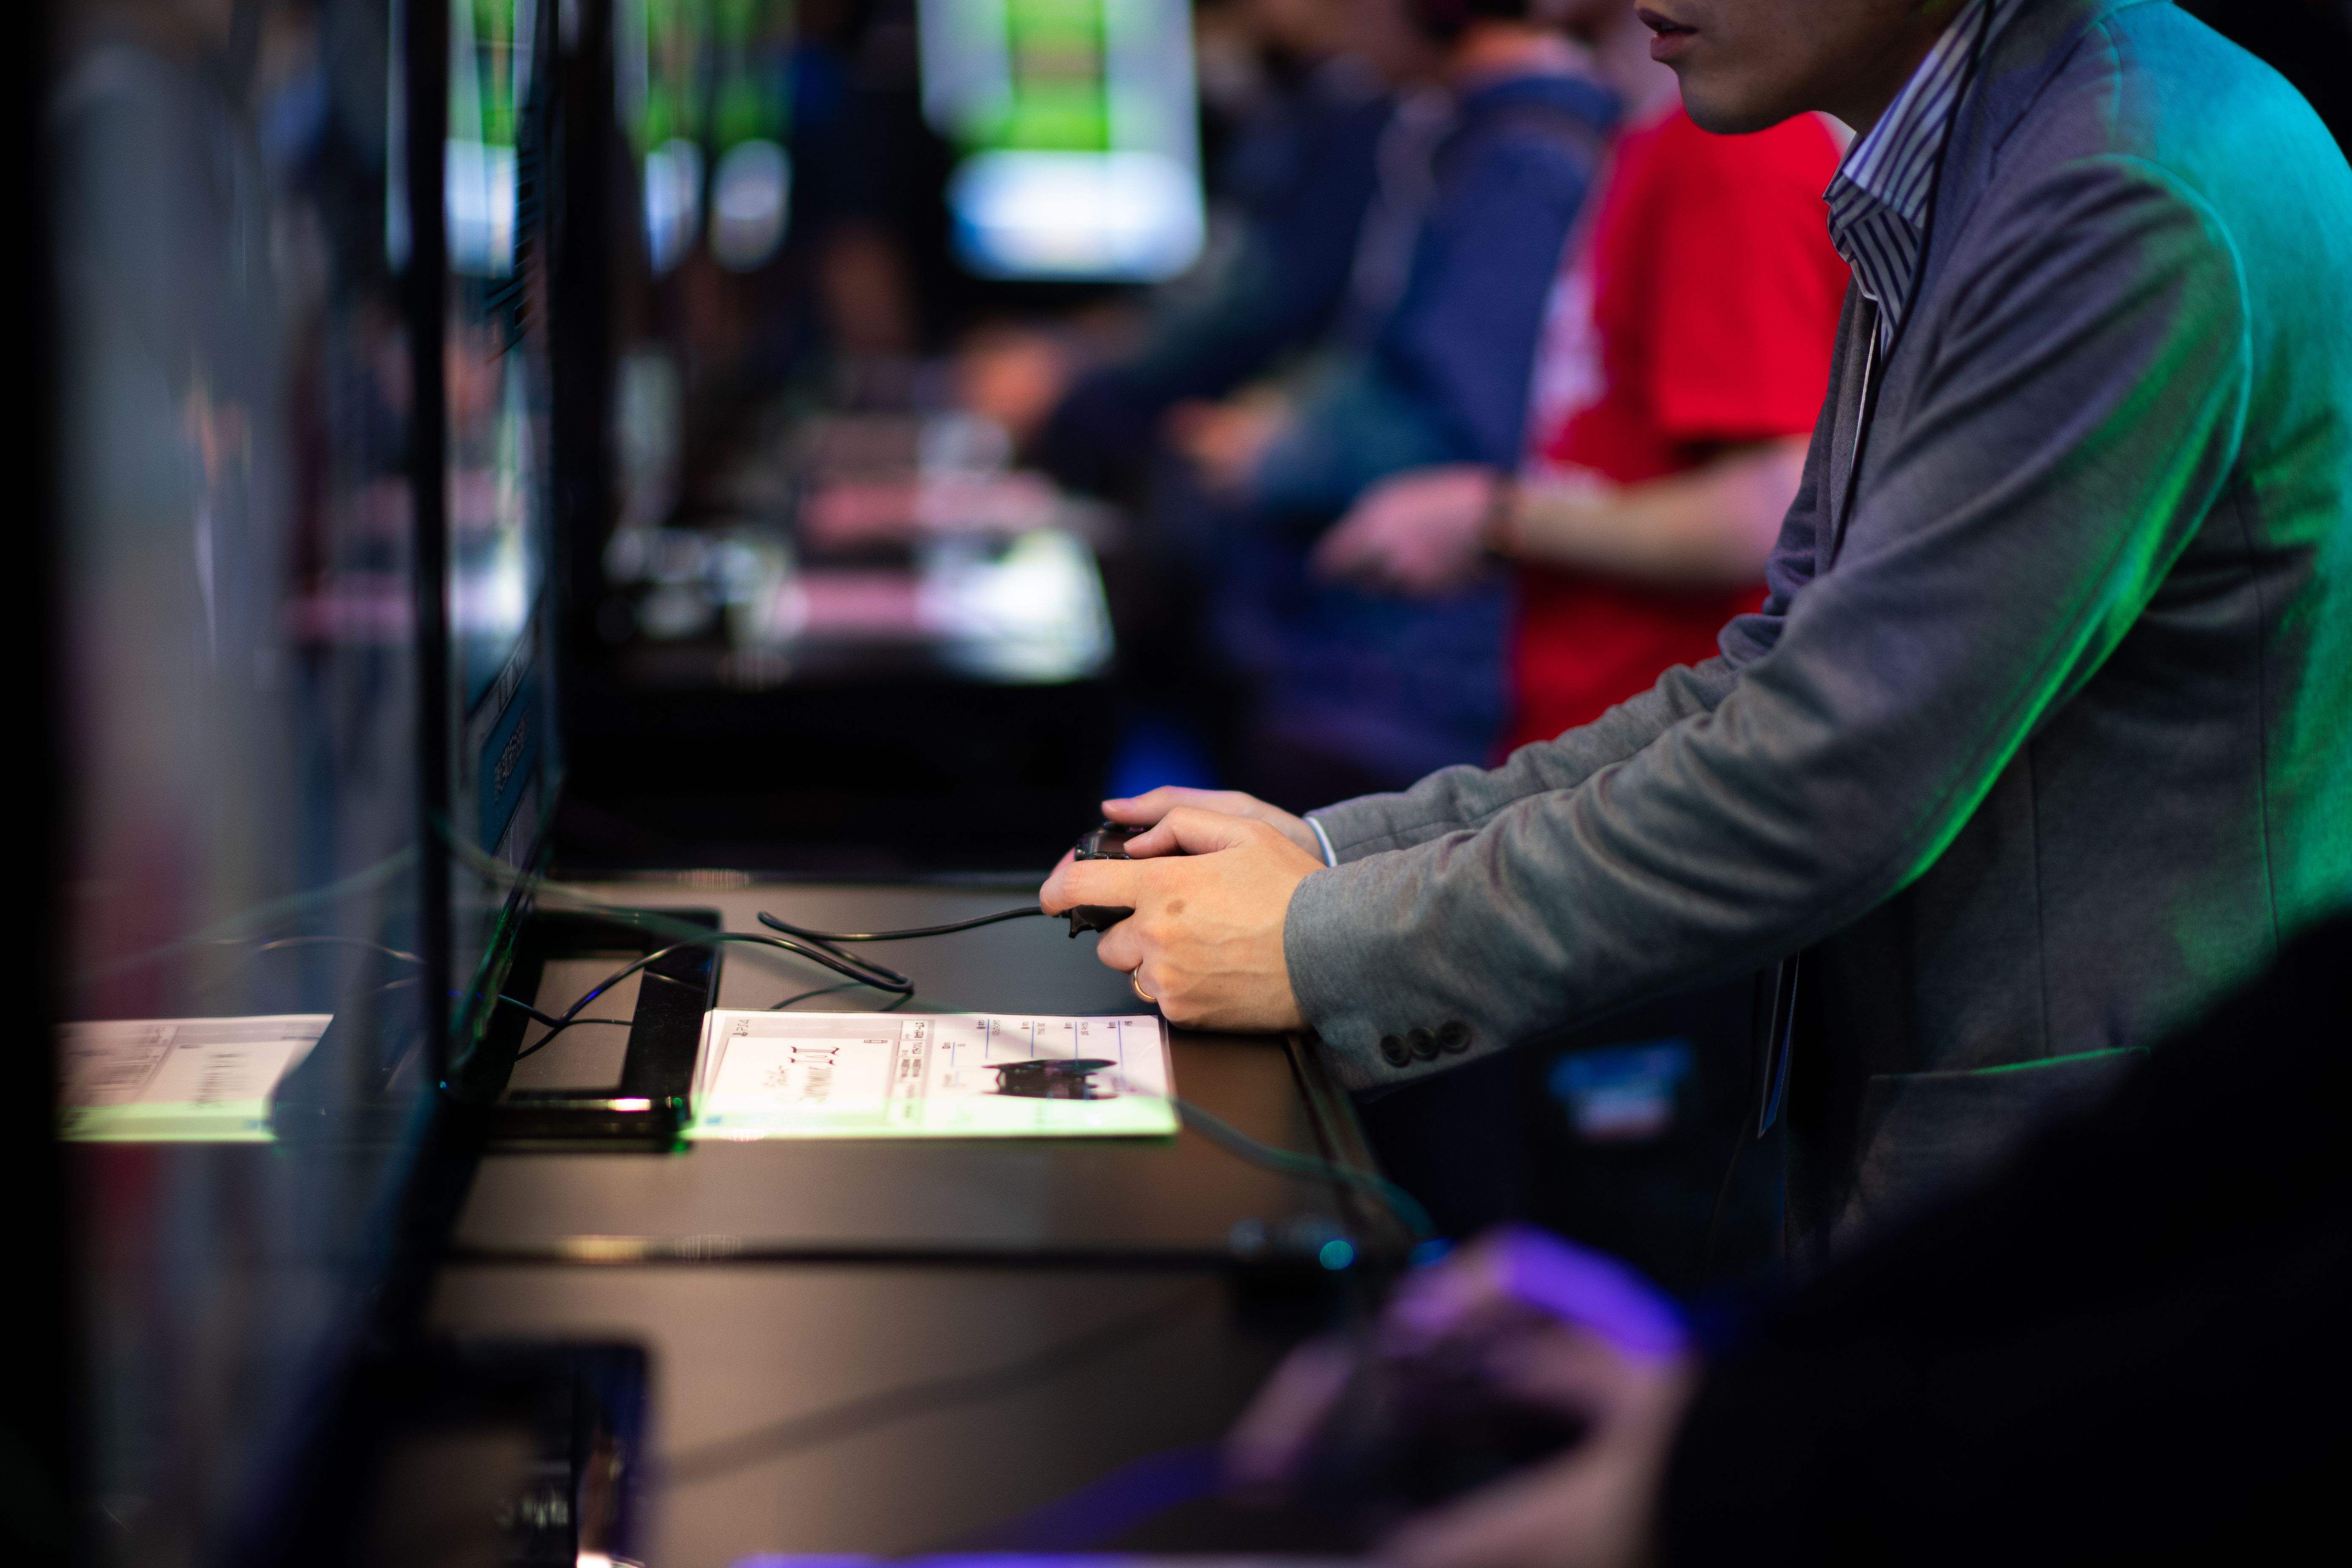 A visitor plays video games at the Tokyo Game Show on September 21, 2018. (MARTIN BUREAU/AFP/Getty Images)